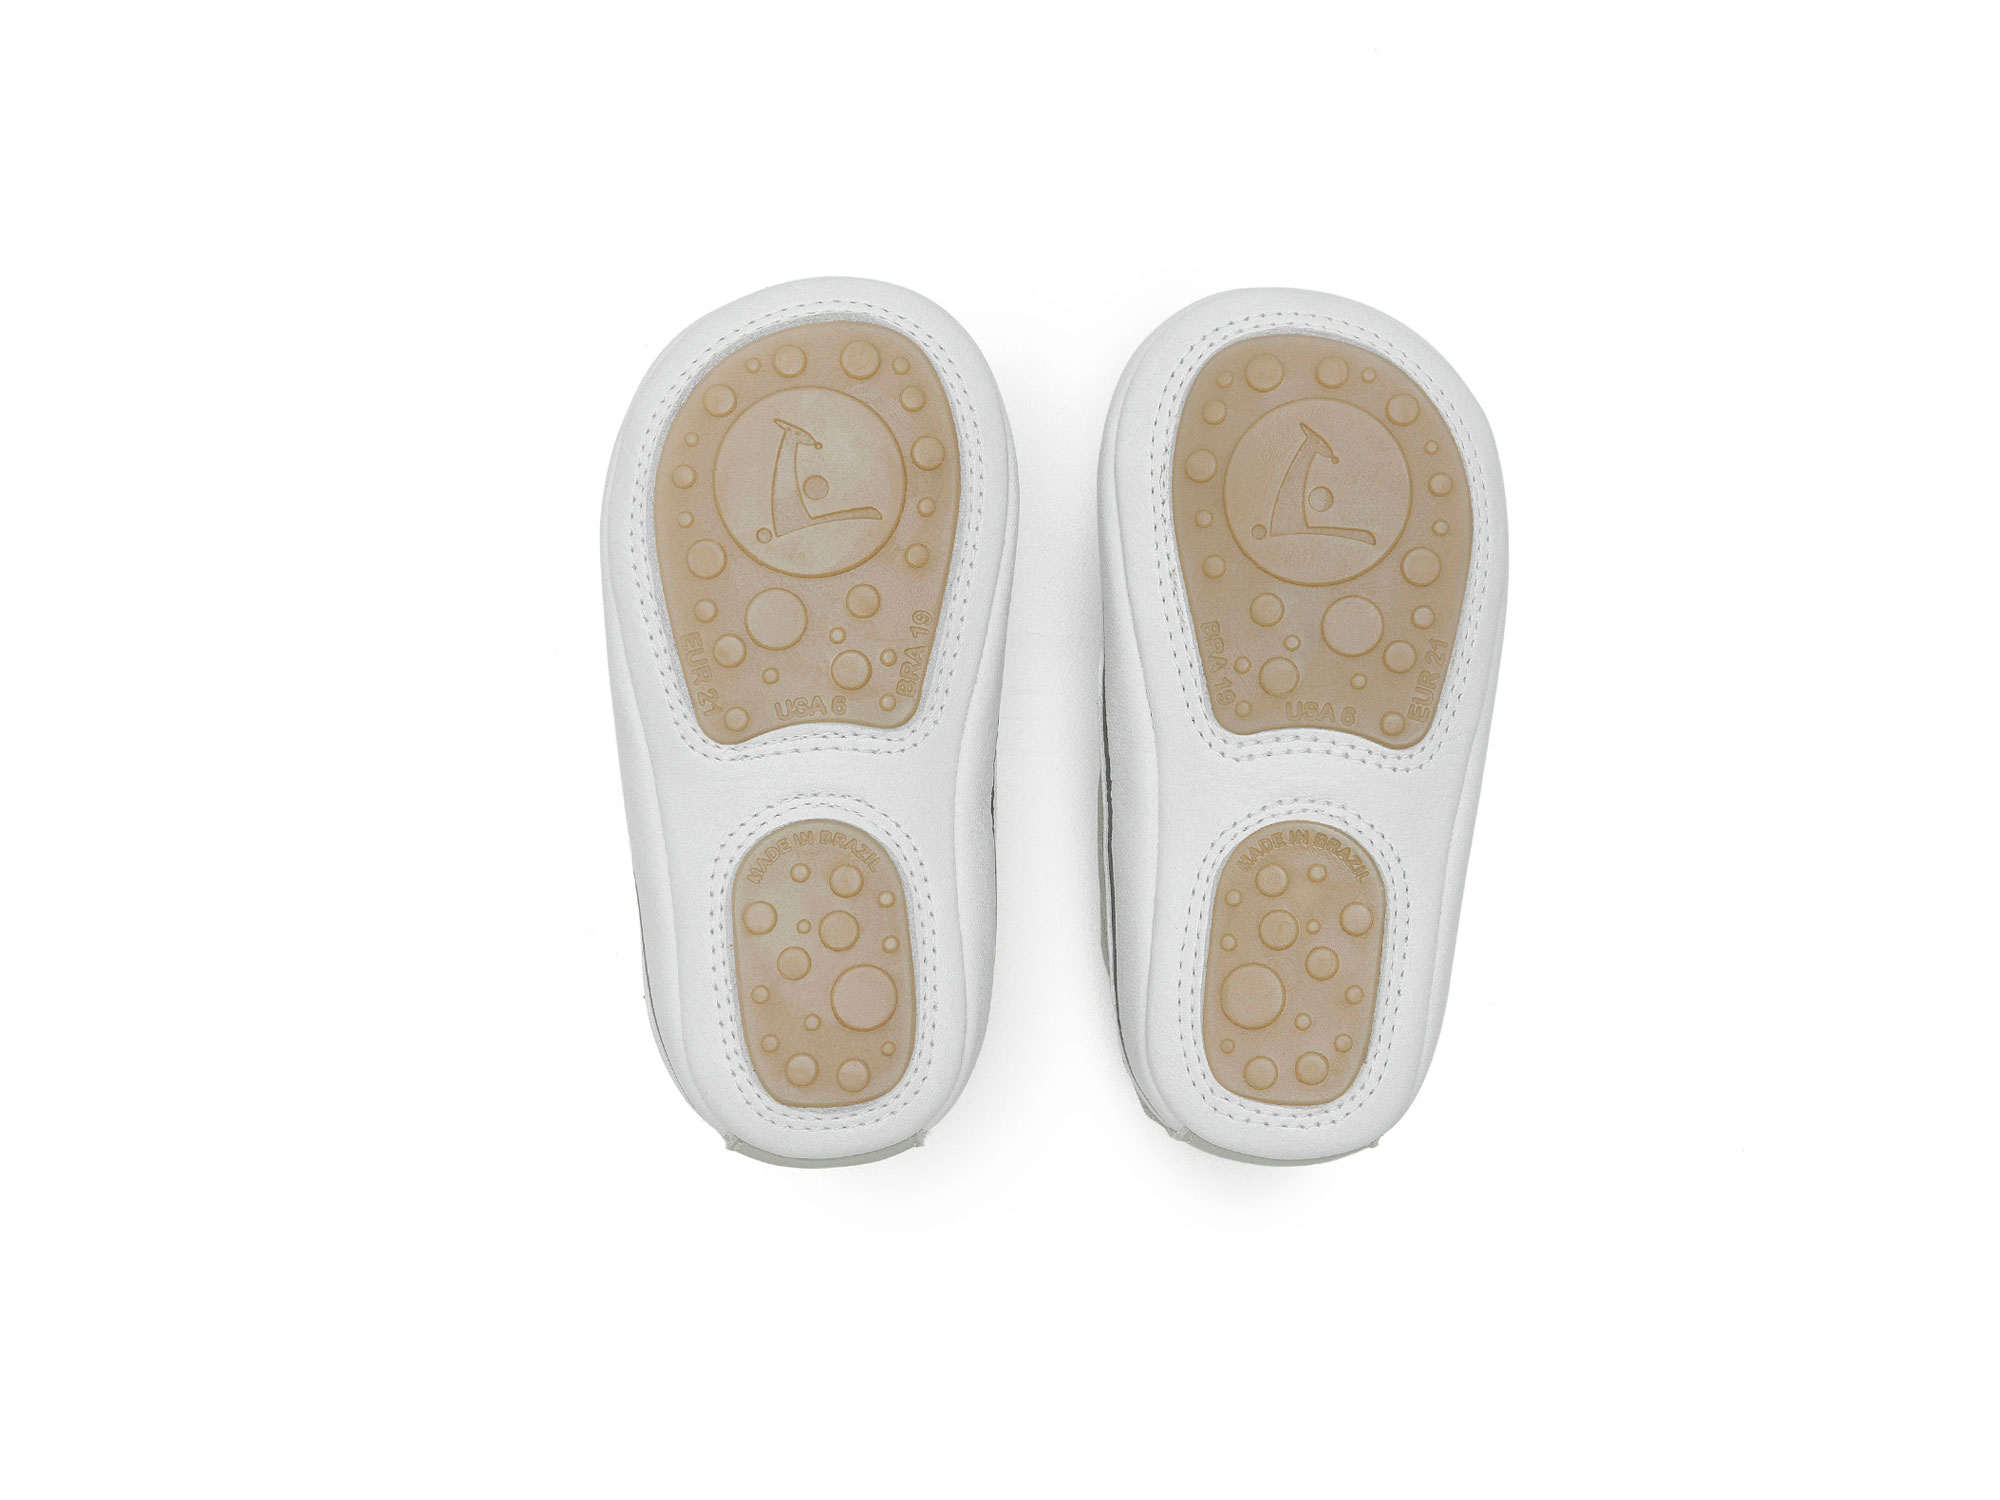 Tênis Urby Pumice/ White/ Ivory Suede Baby for ages 0 to 2 years - 3